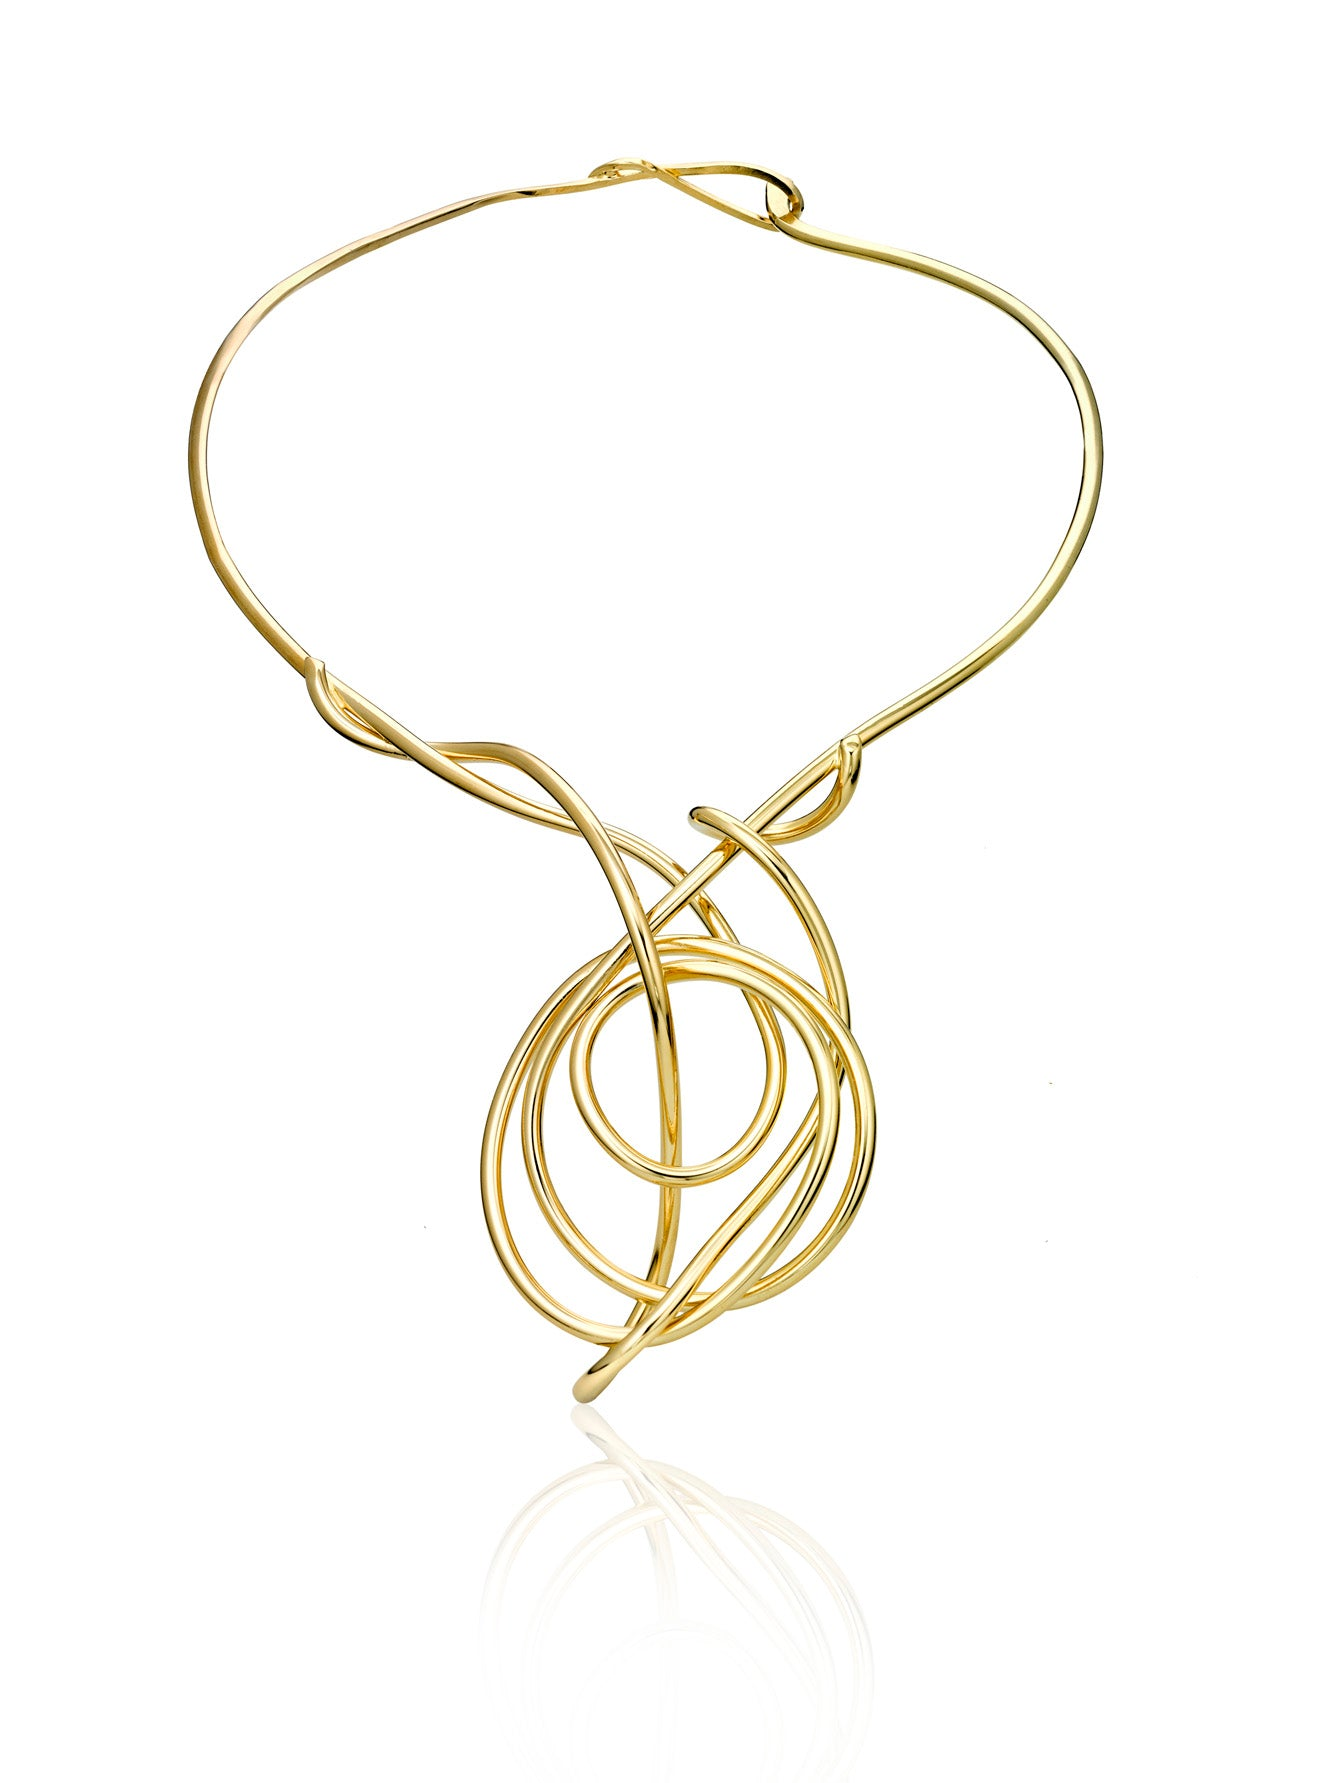 Hand formed wire sculpture necklace, Chaotic Girls No2. This is hand bent in brass and finished with 14k gold plate.